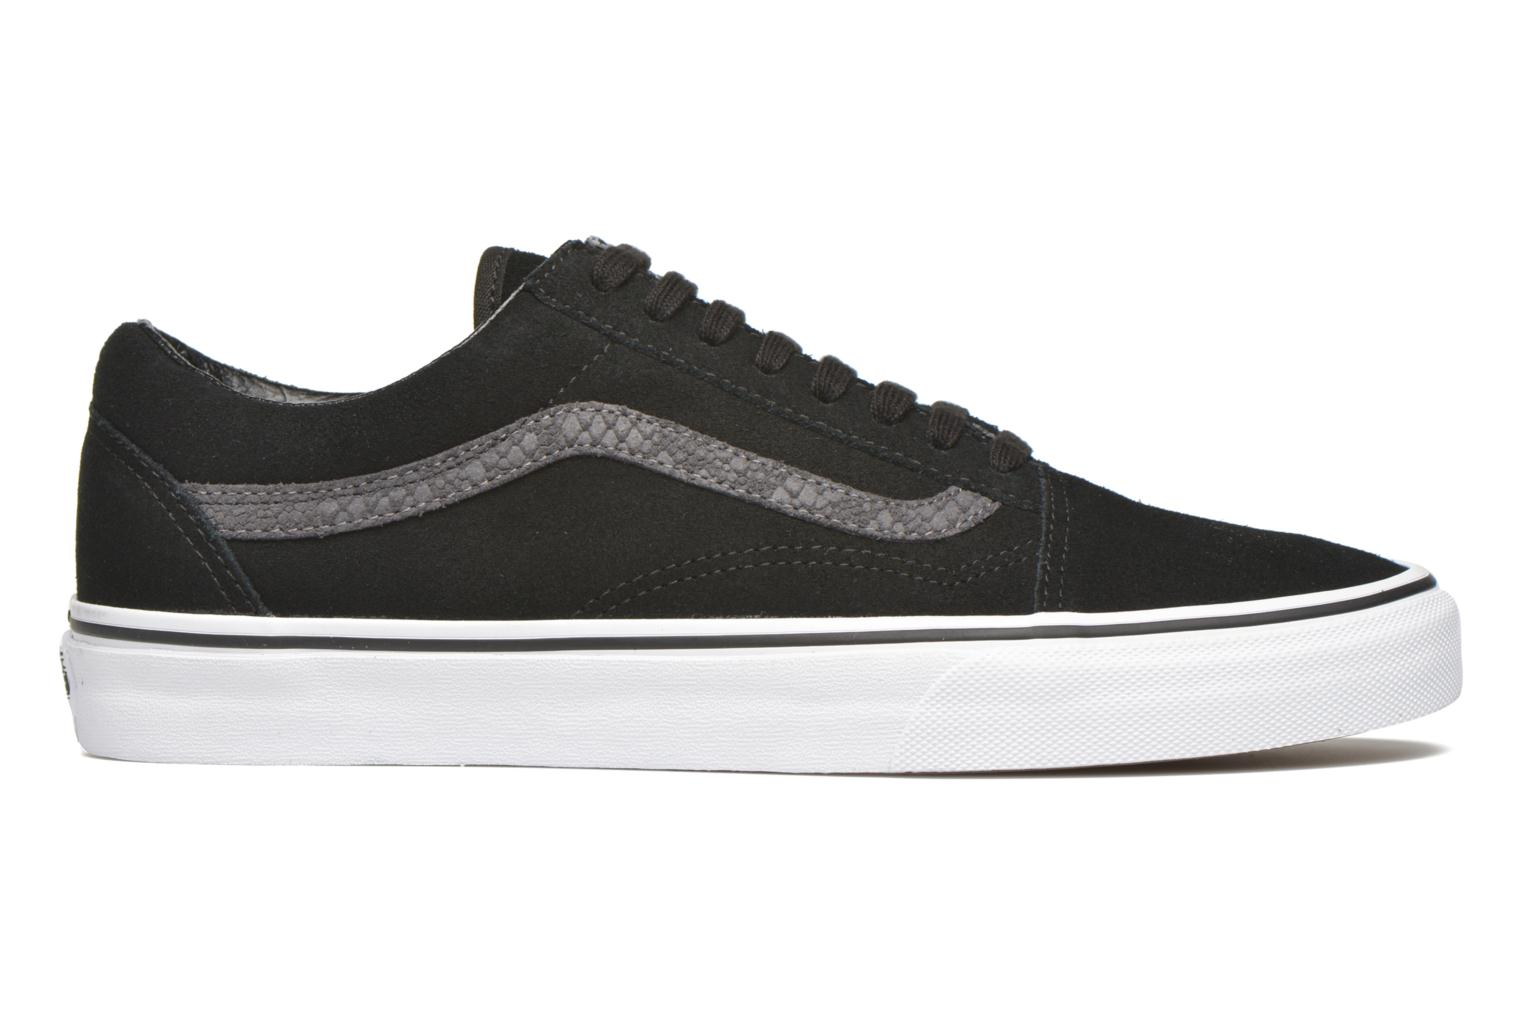 Old Skool (Reptile) Black/Tornado